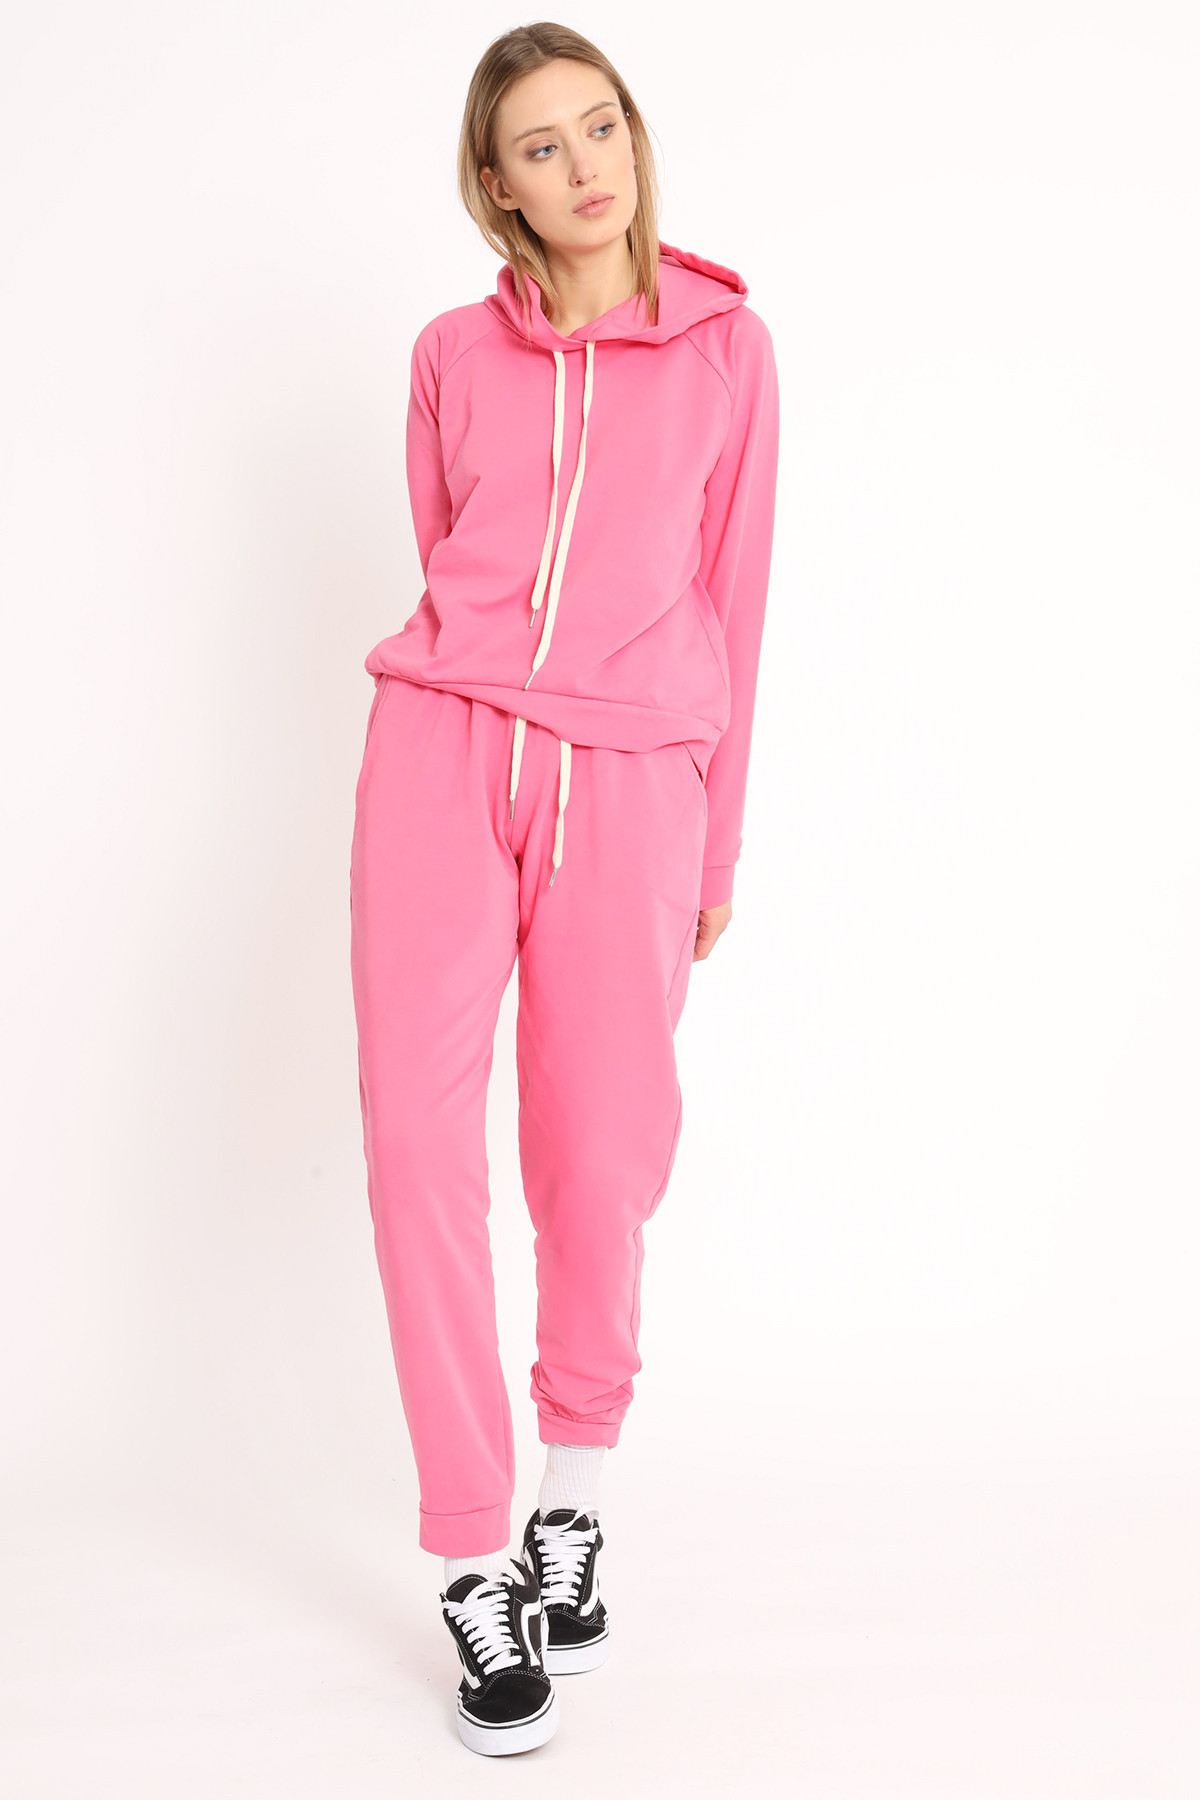 Complete Tracksuit With Hooded Sweatshirt Jogging Pants